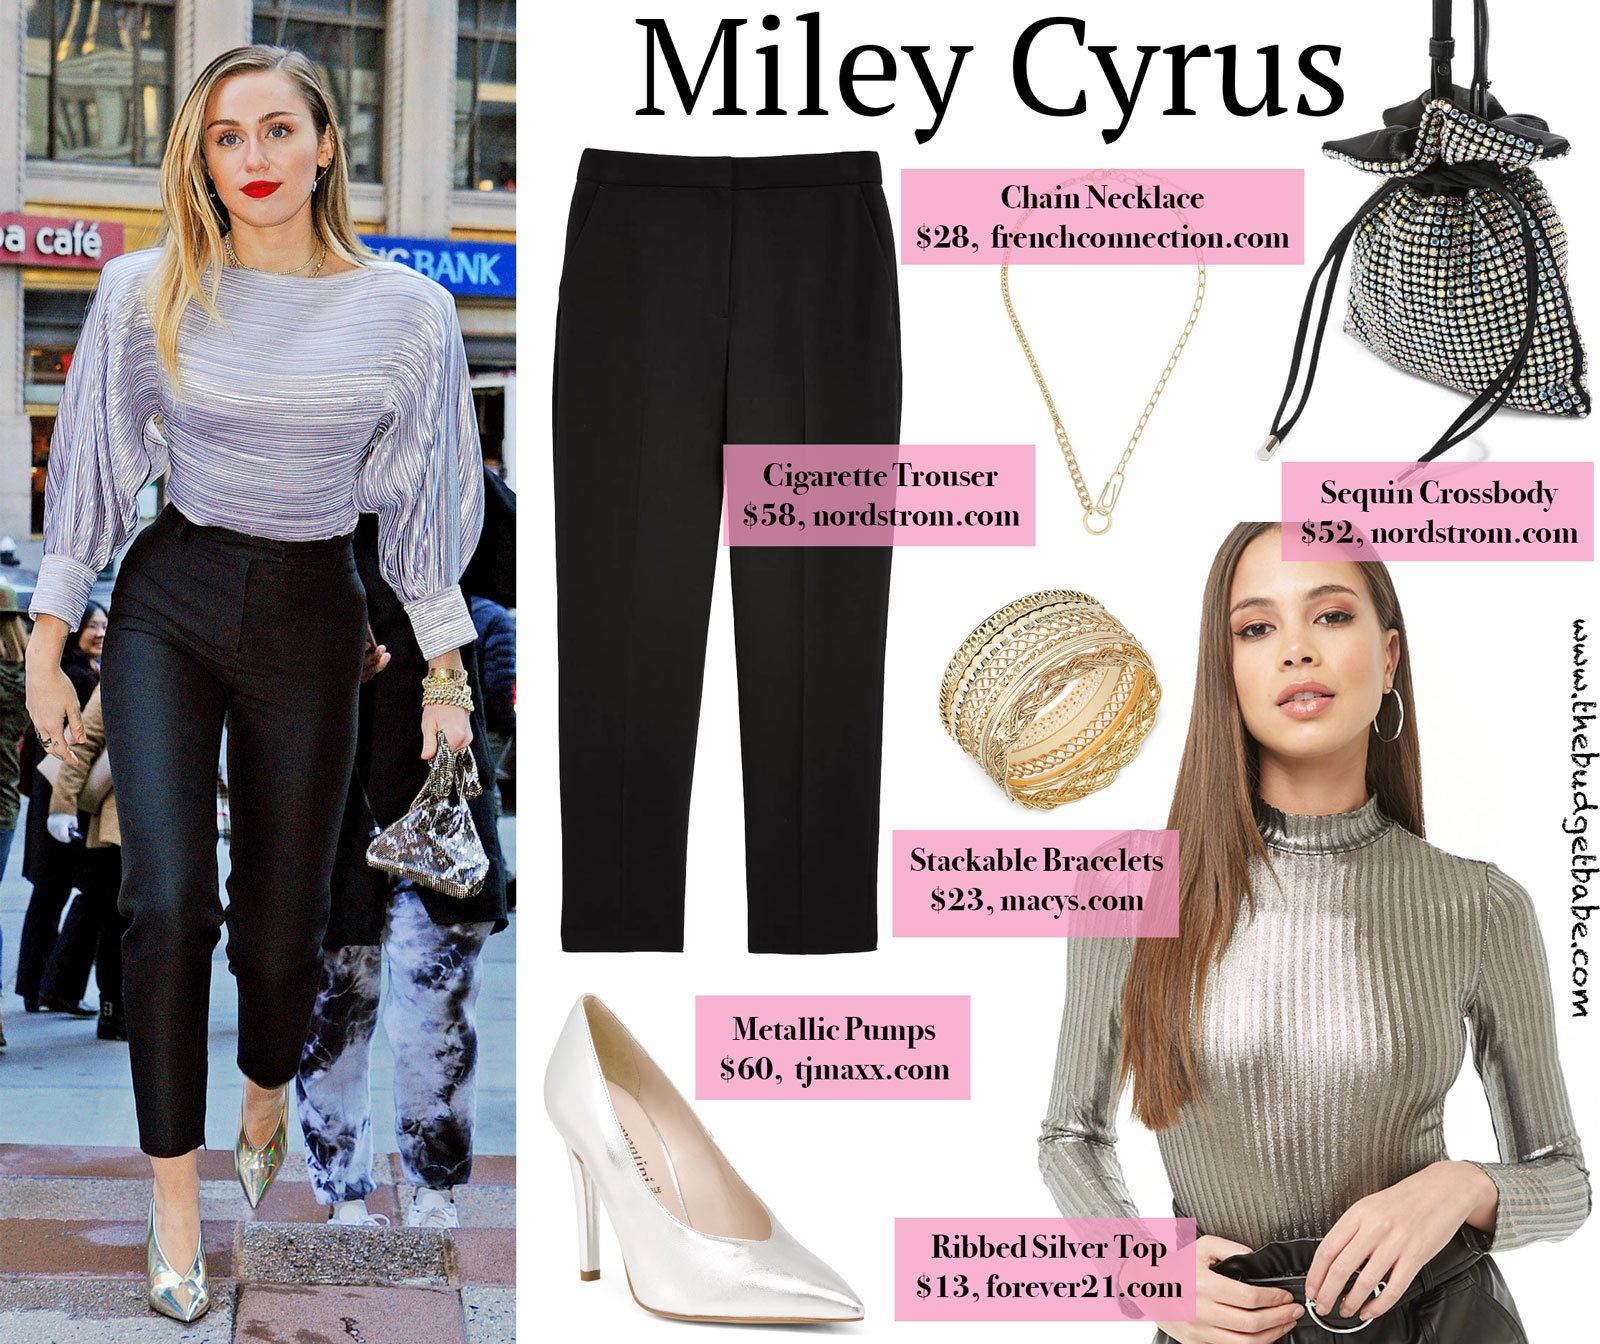 Miley Cyrus Loui Vuitton Silver Top Look for Less